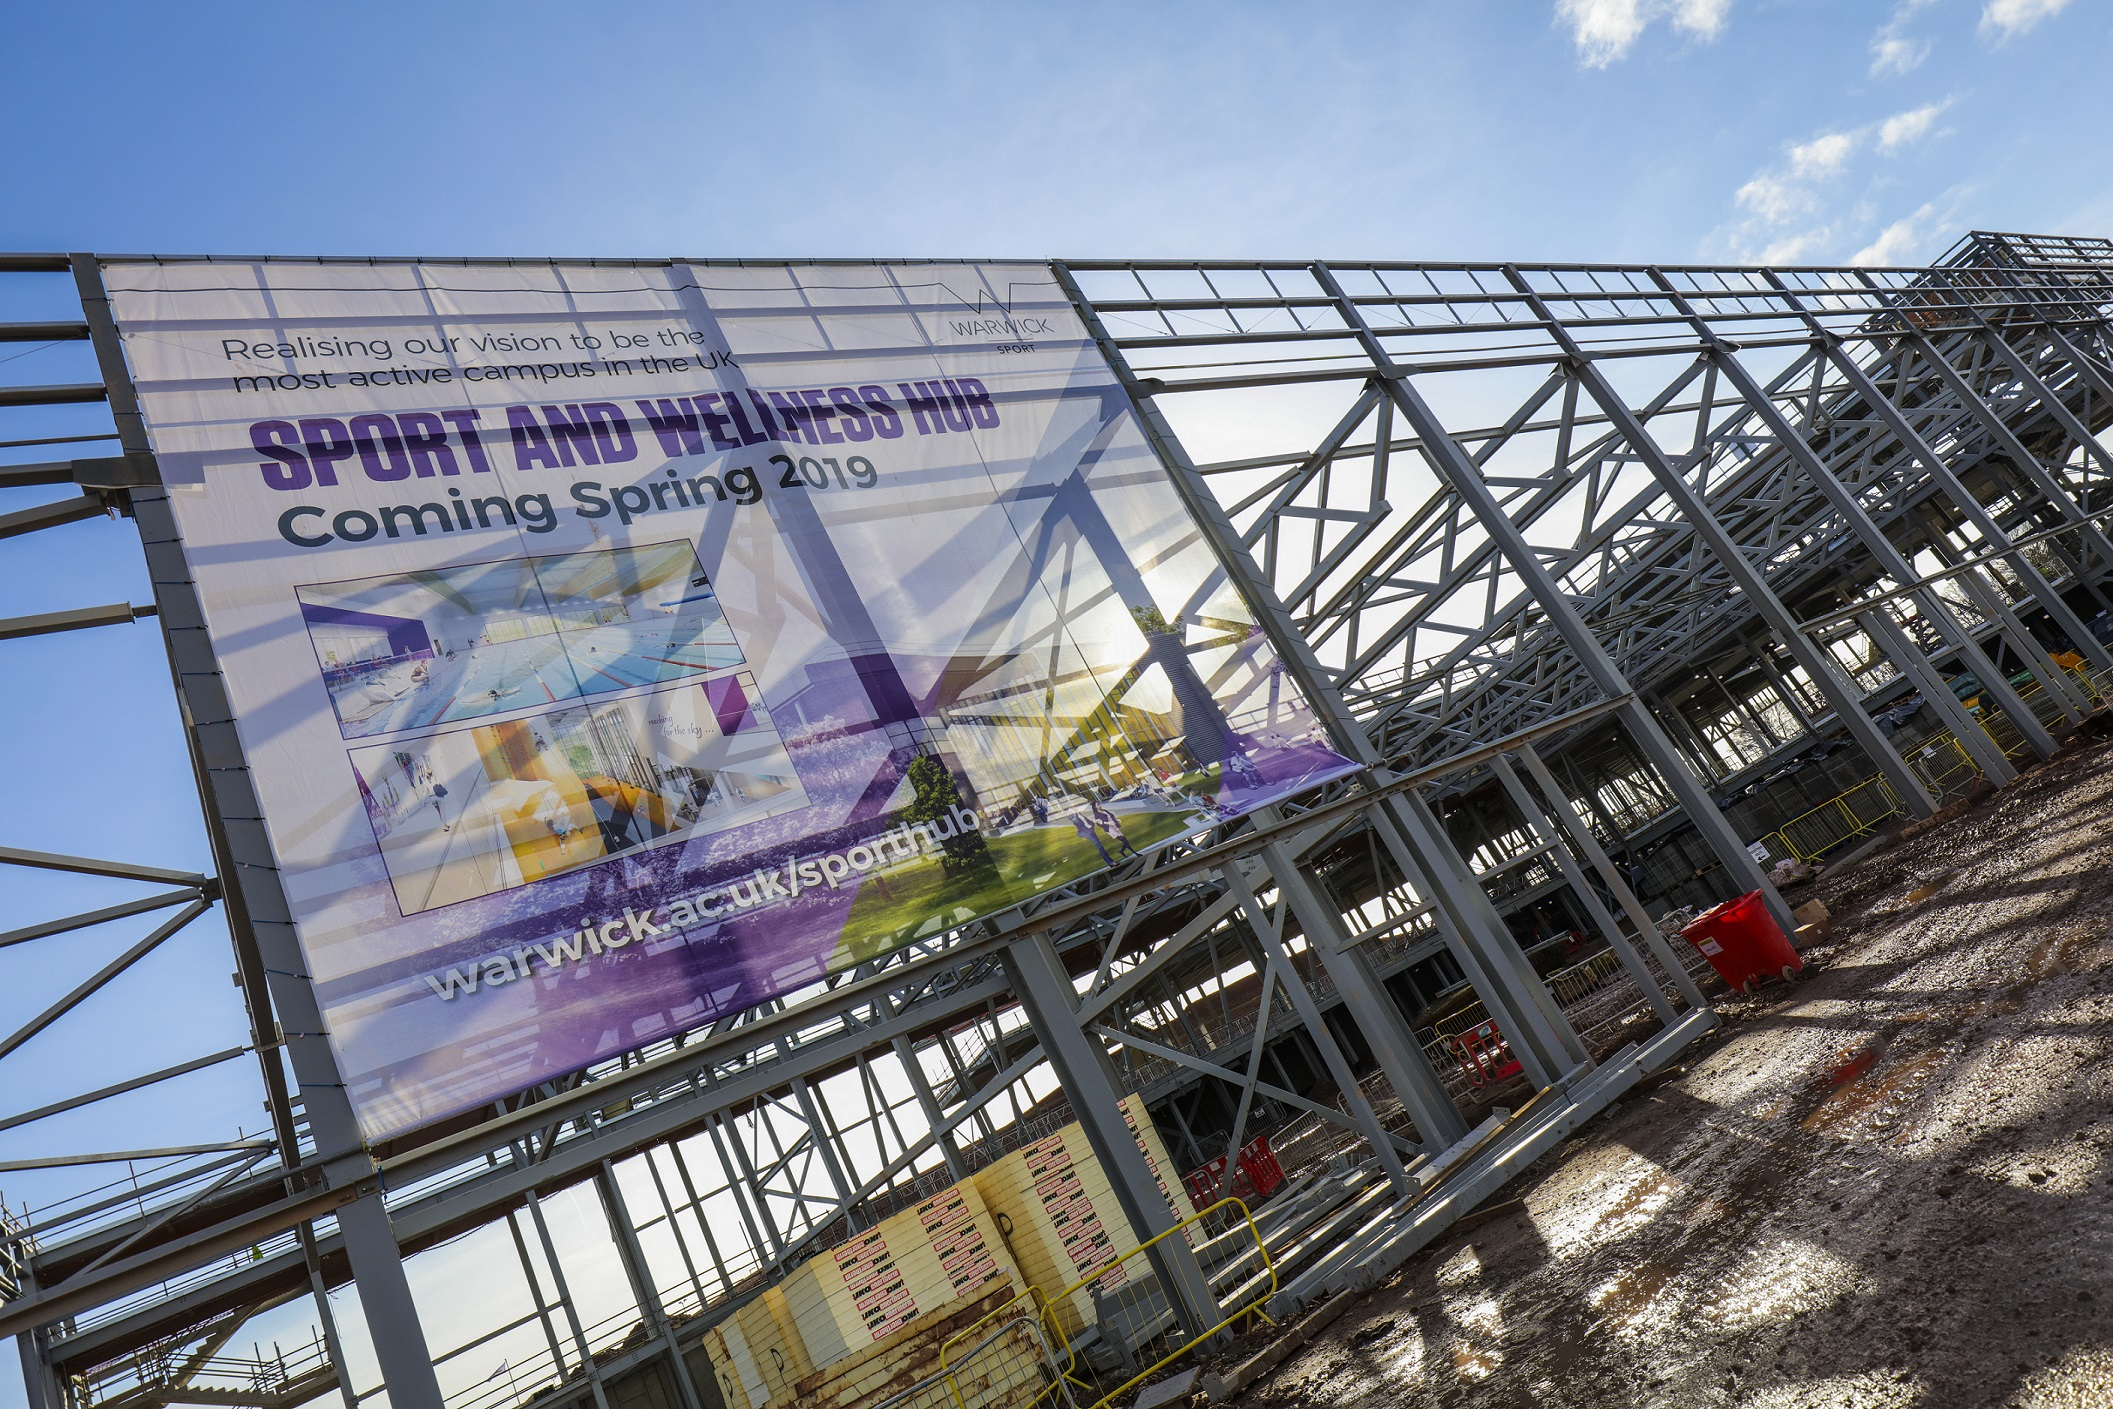 CELEBRATIONS AS STATE-OF-THE-ART SPORTS HUB NEARS COMPLETION